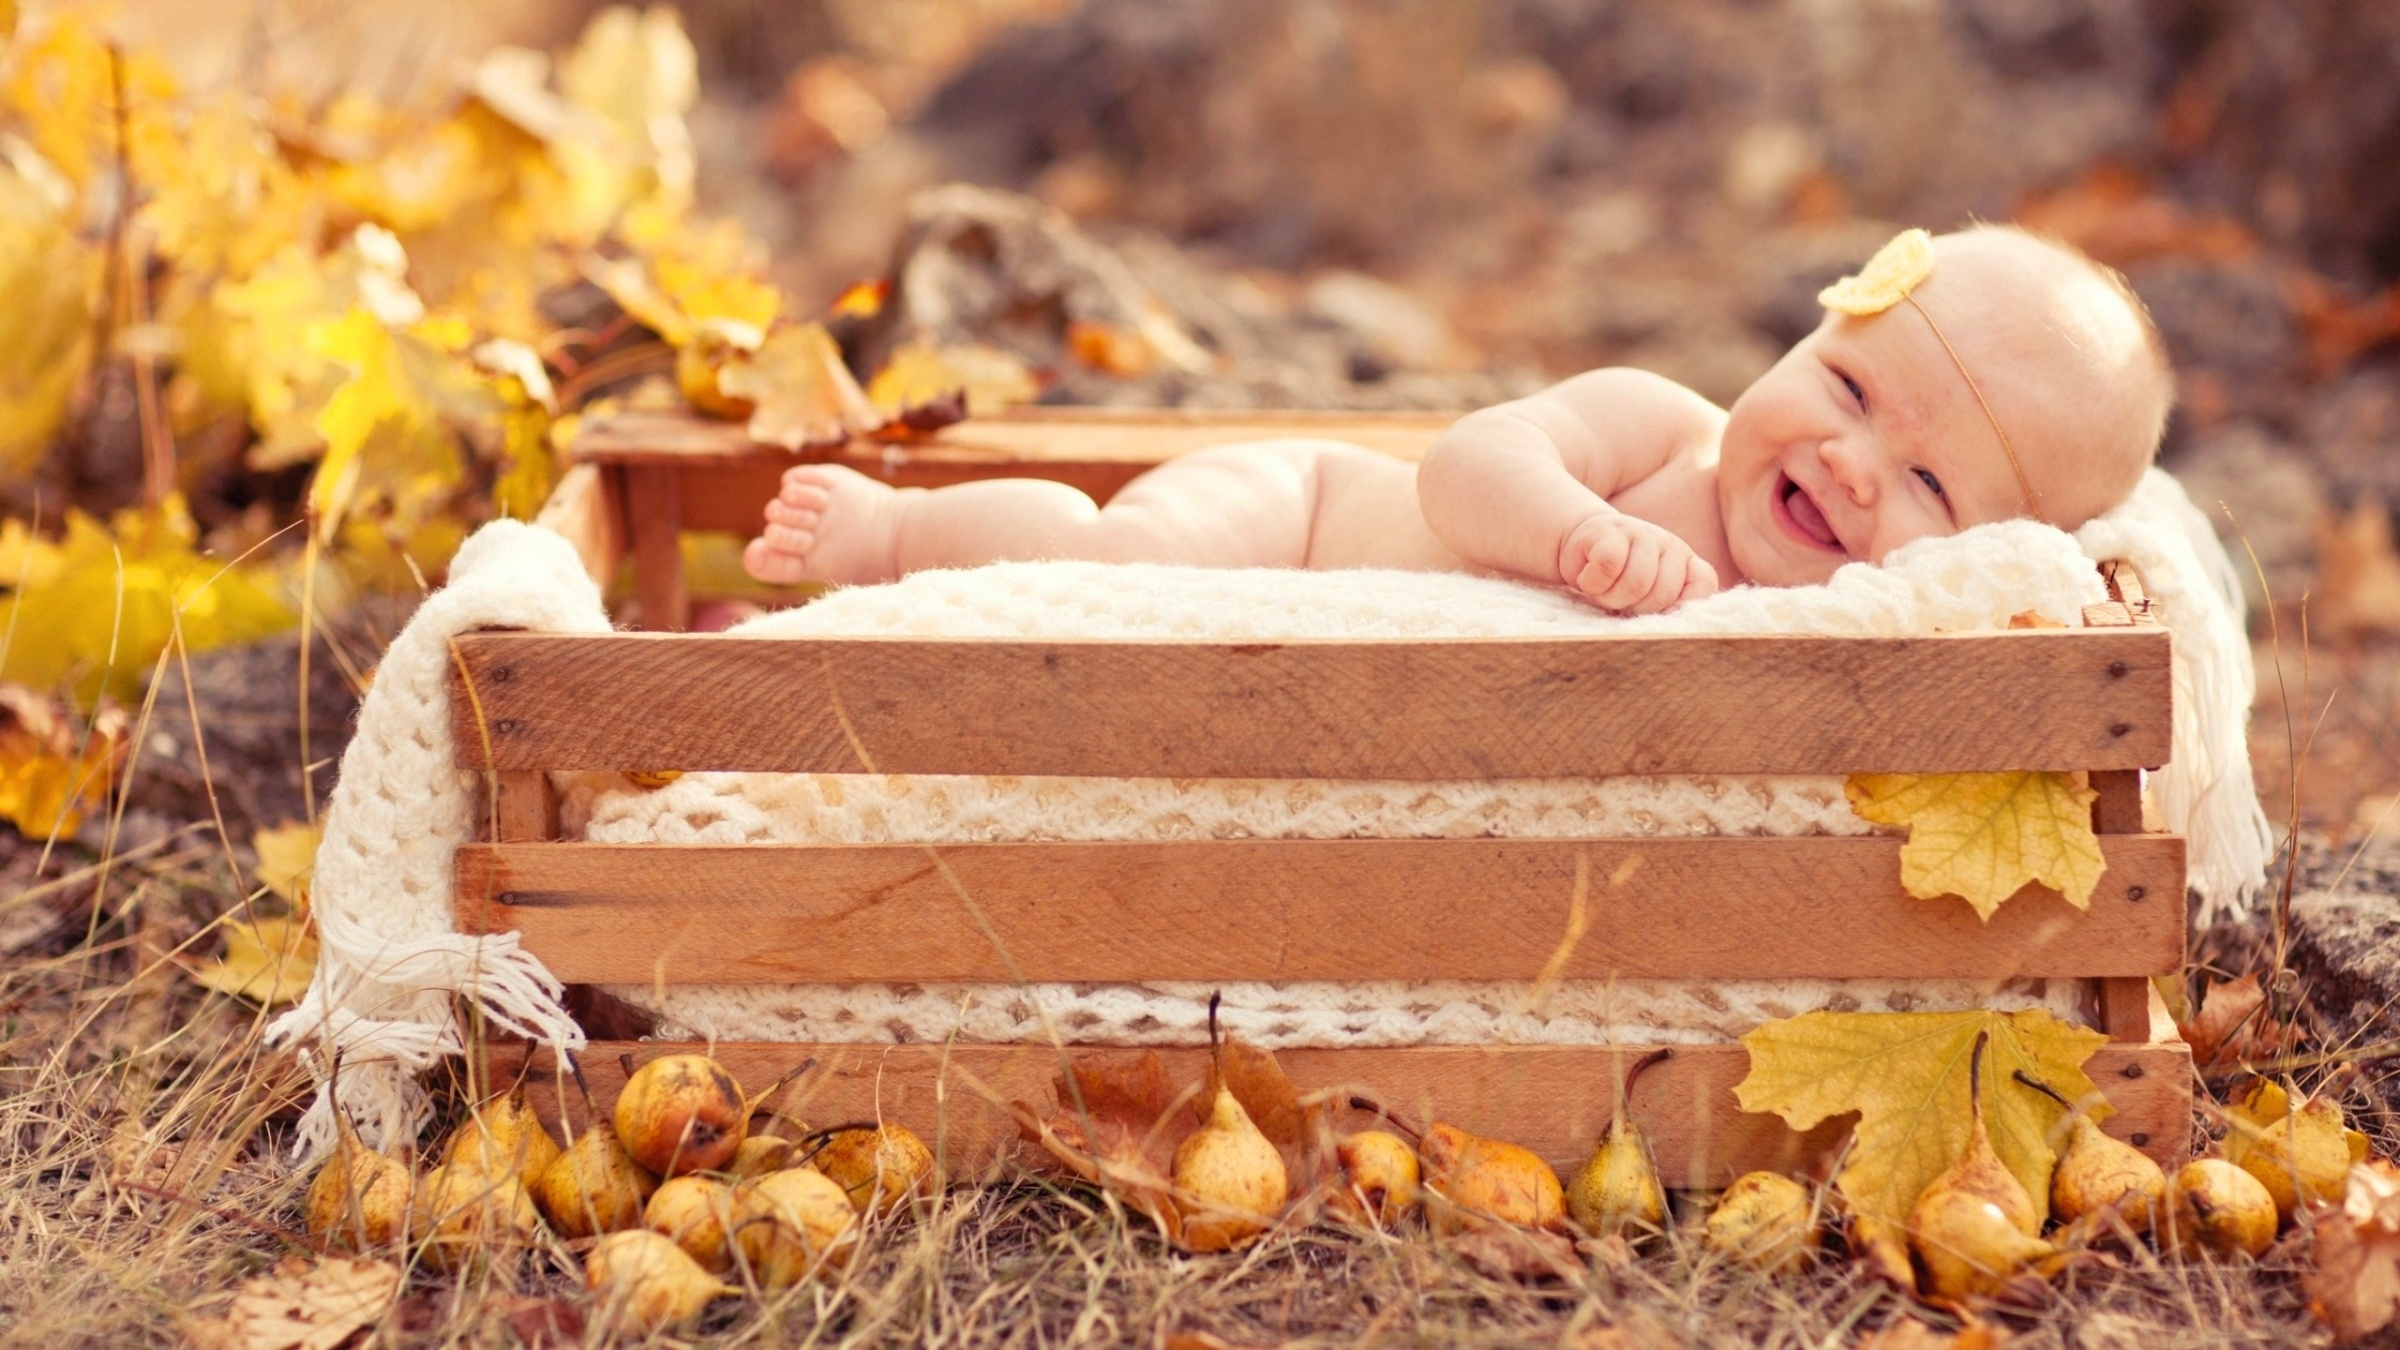 Happy Boy In Wooden Box Wallpapers 2400x1350 899442